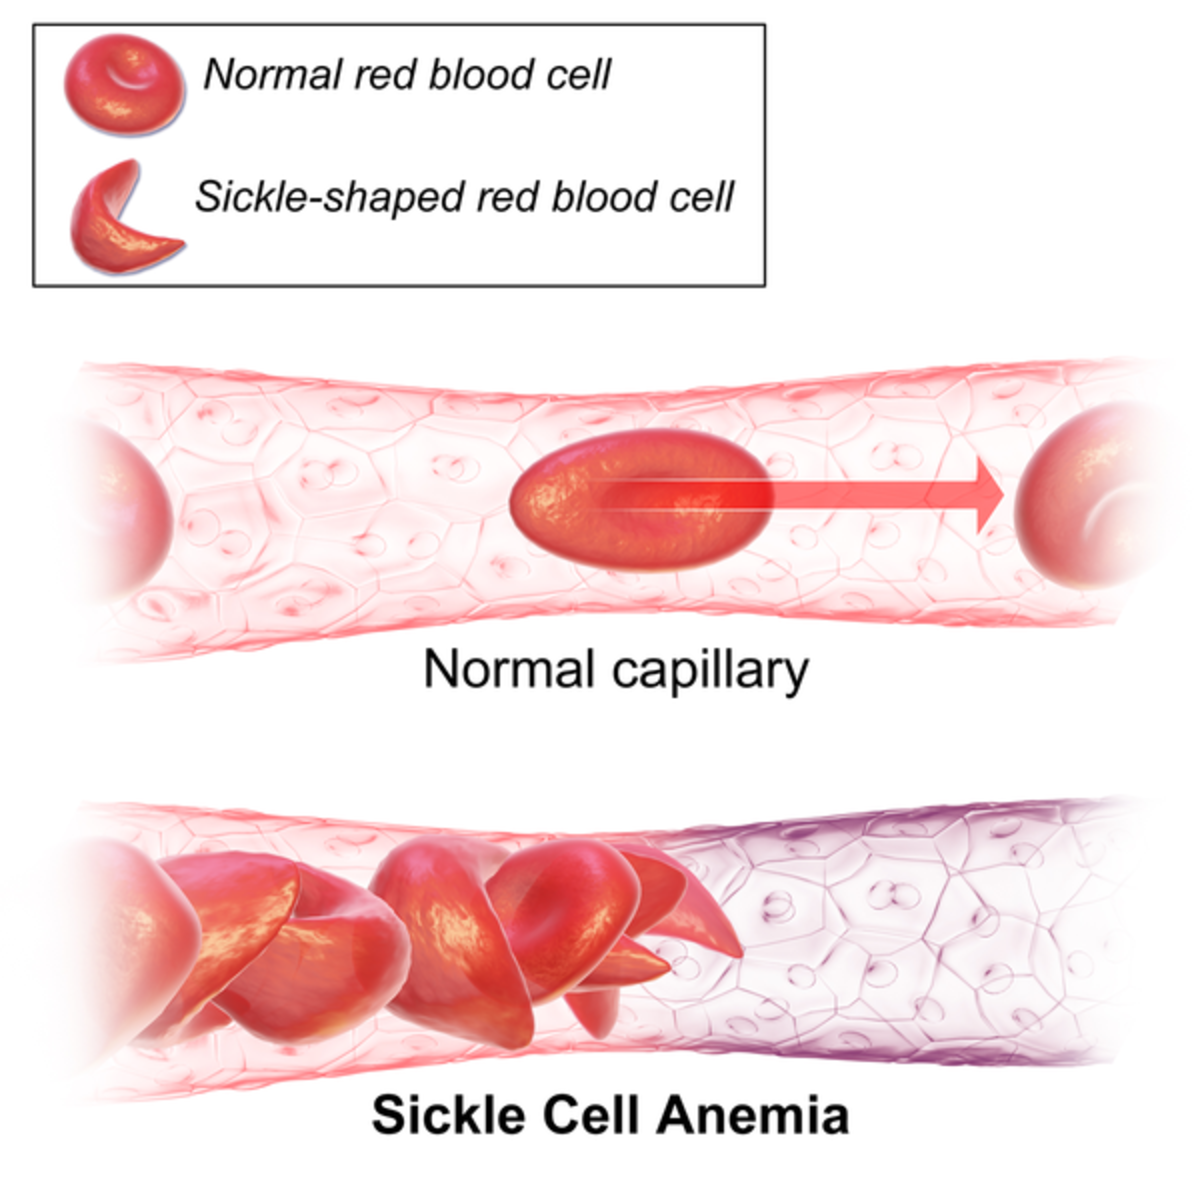 Sickle Cell Disease or Anemia and CRISPR-Cas9 Genome Editing